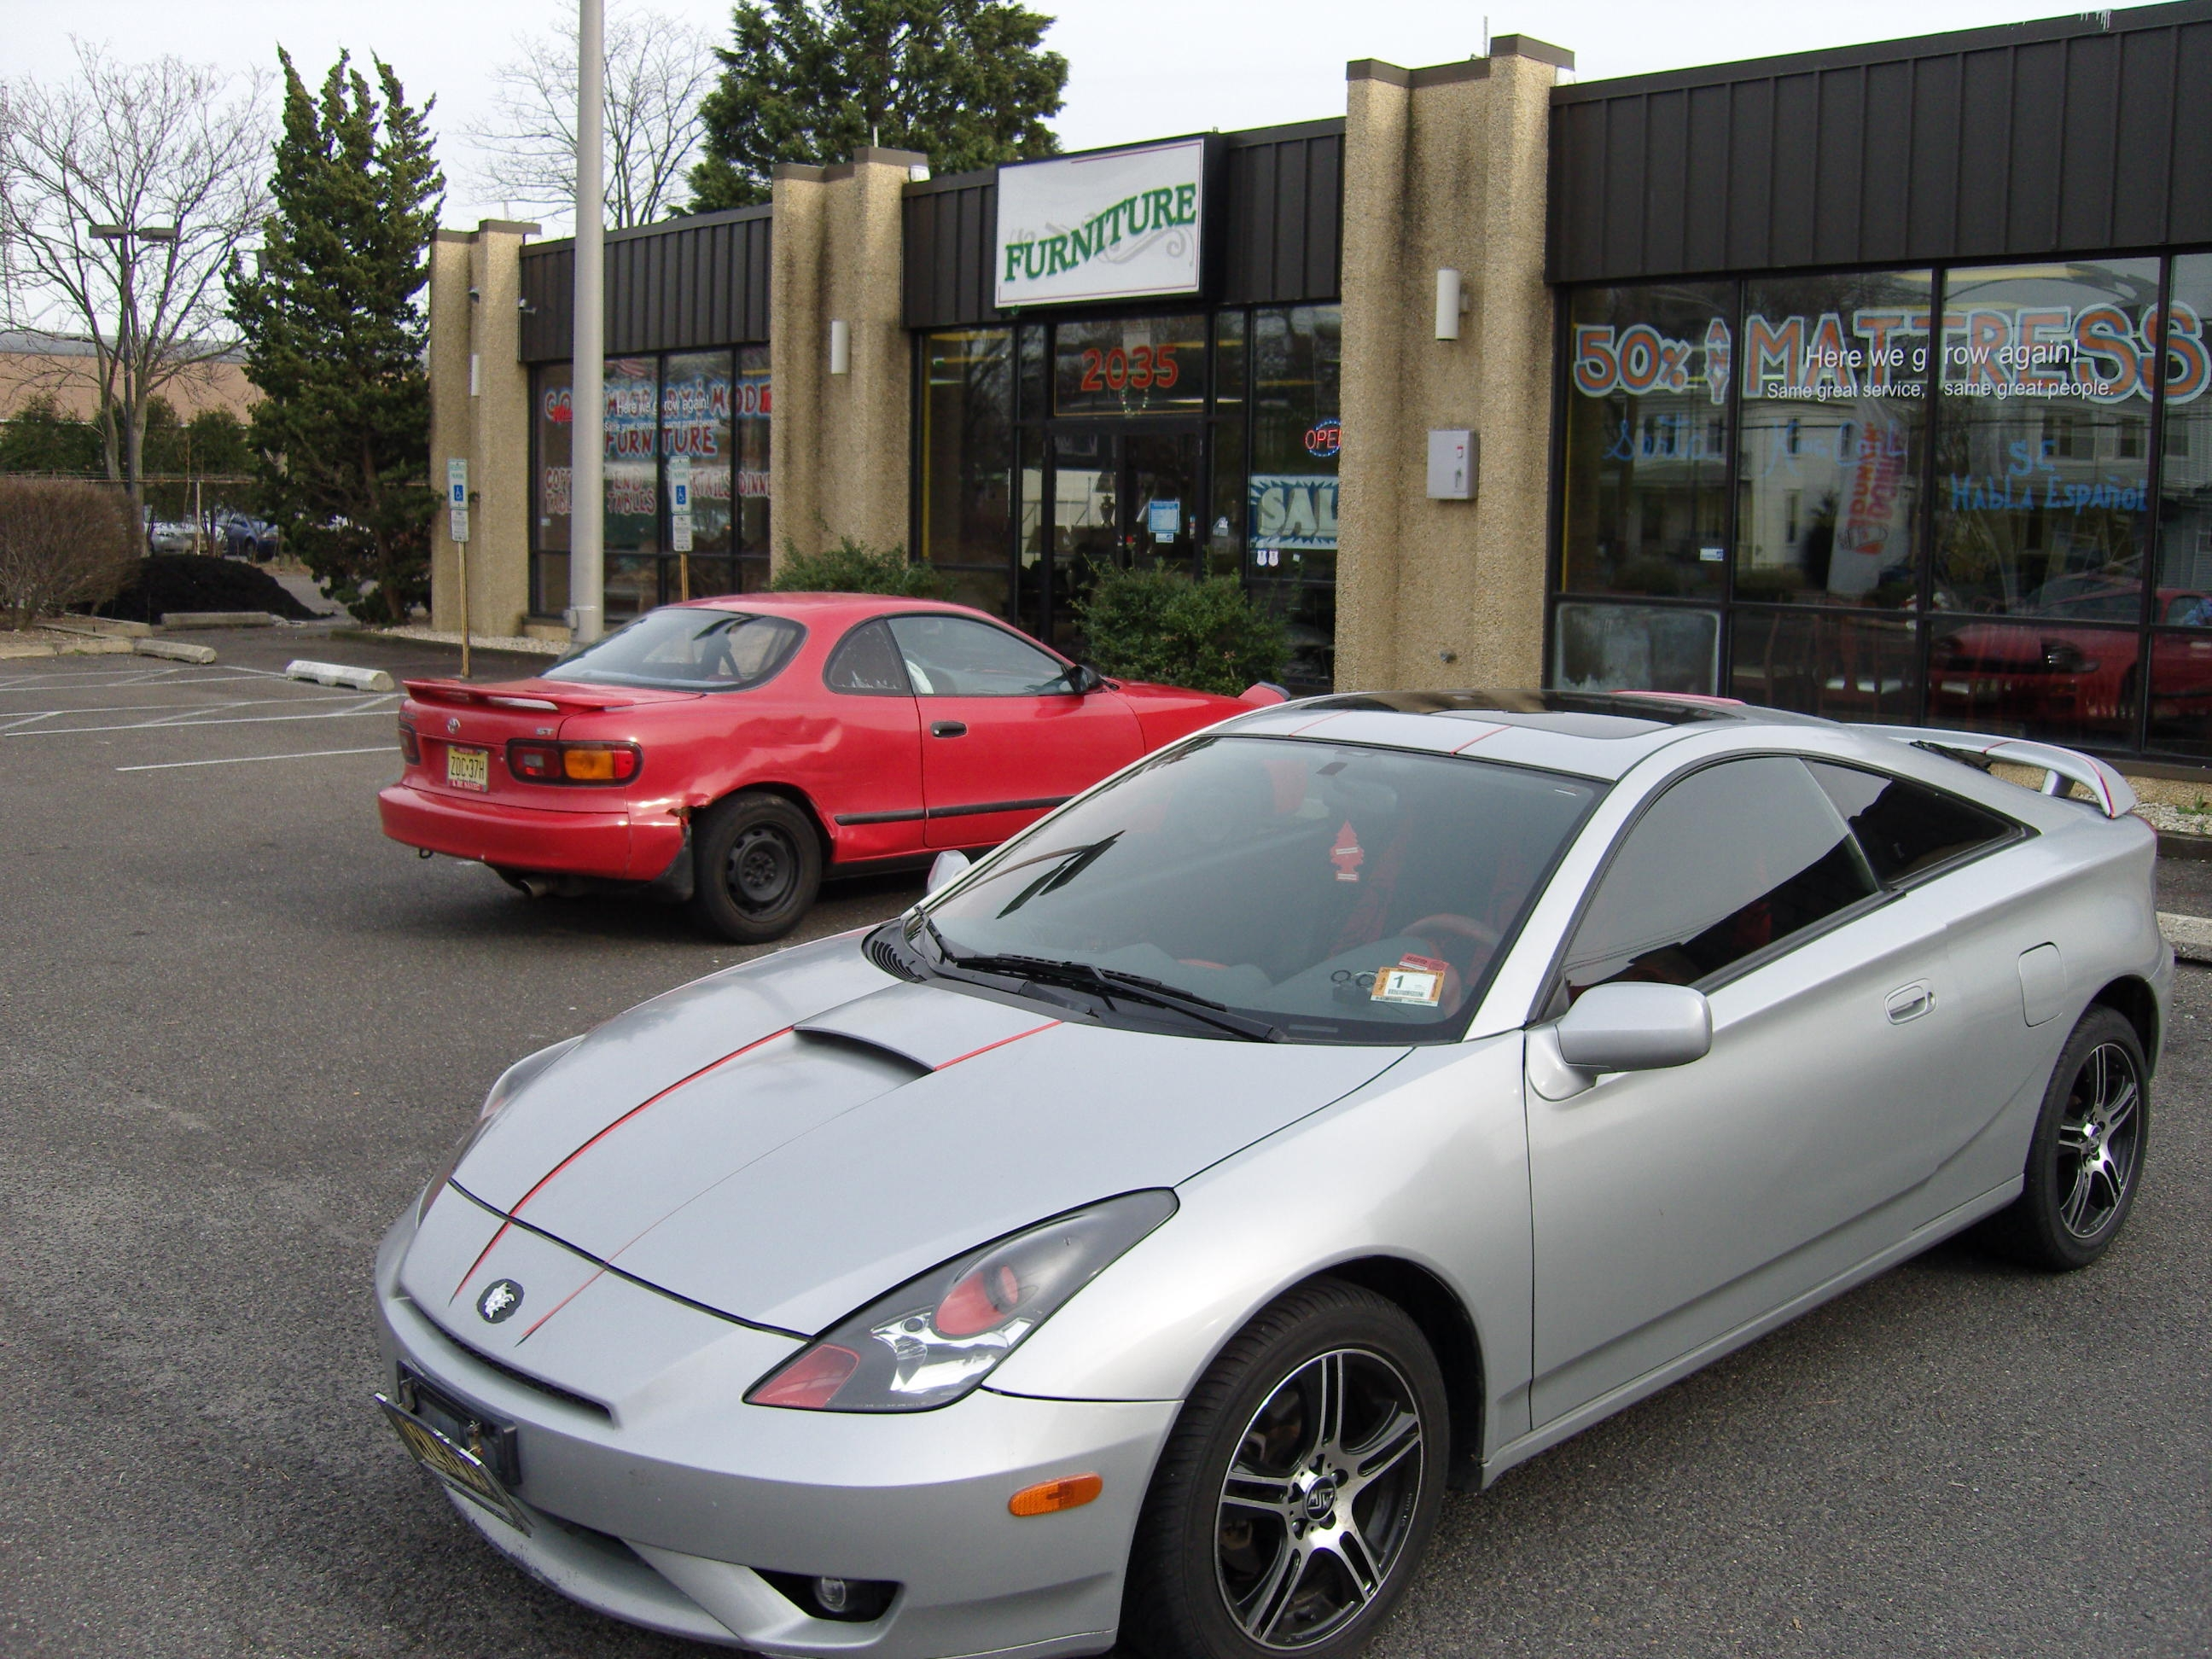 wheelerz007 39 s 2003 toyota celica page 2 in hightstown nj. Black Bedroom Furniture Sets. Home Design Ideas